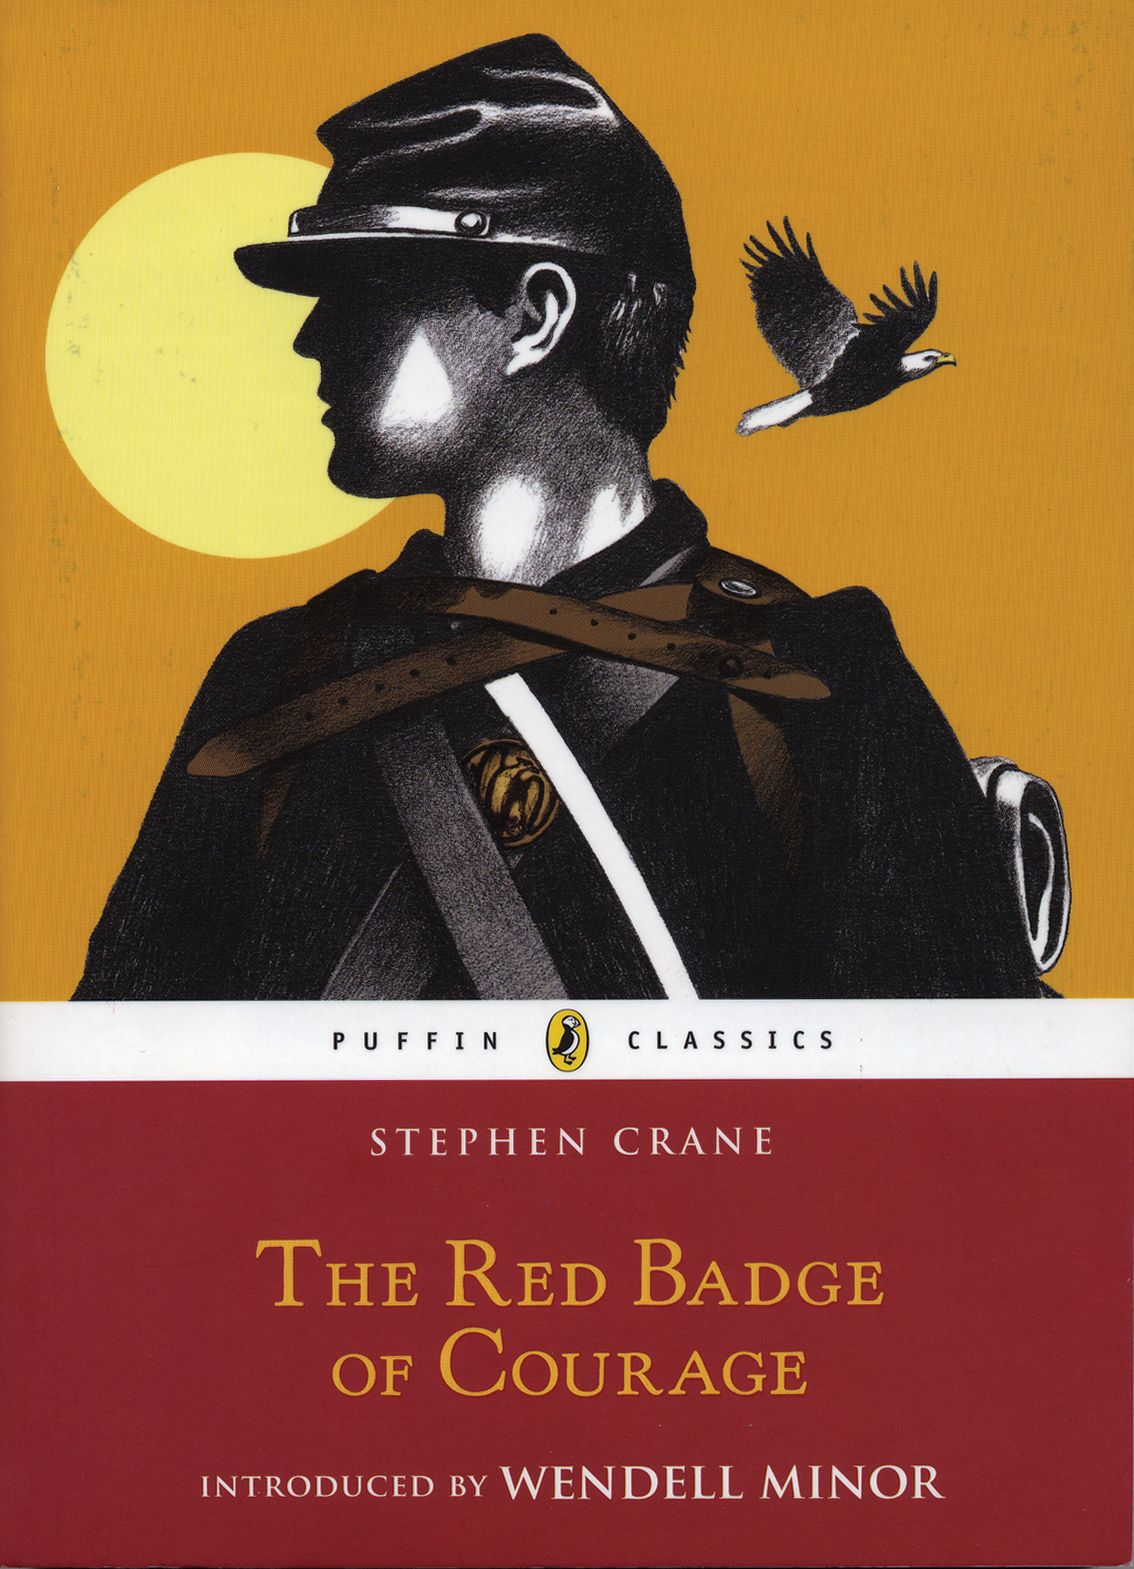 The Red Badge Of Courage By Stephen Crane Challenge I Lit Not One Of My Favorites With Images Stephen Crane Civil War Books Books For Teens